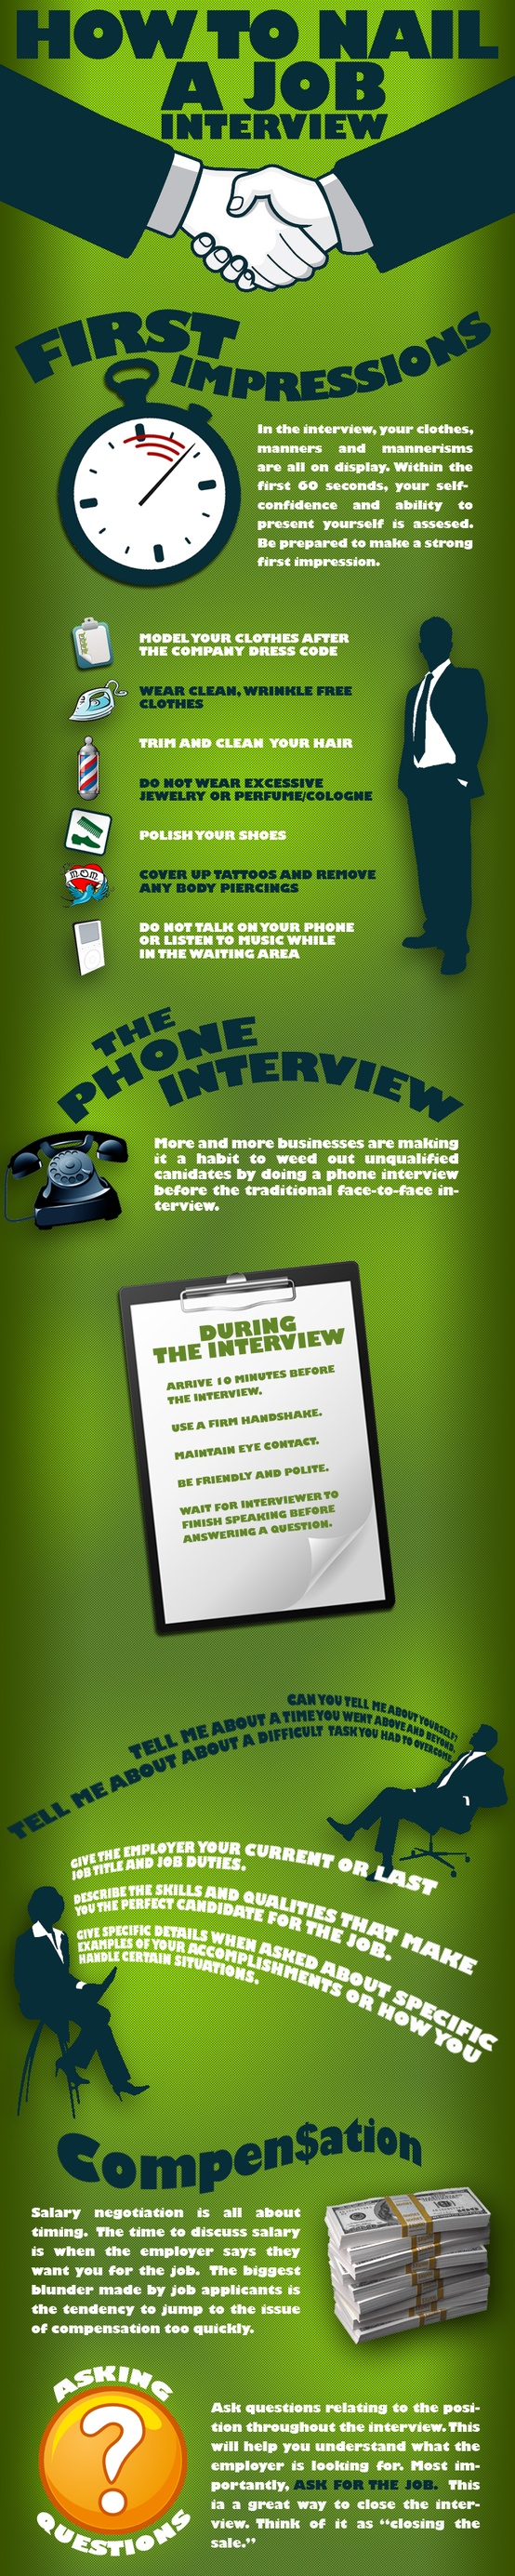 how to nail a job interview infographic the work experts lets go to - Career Advice Career Tips From Professional Experts